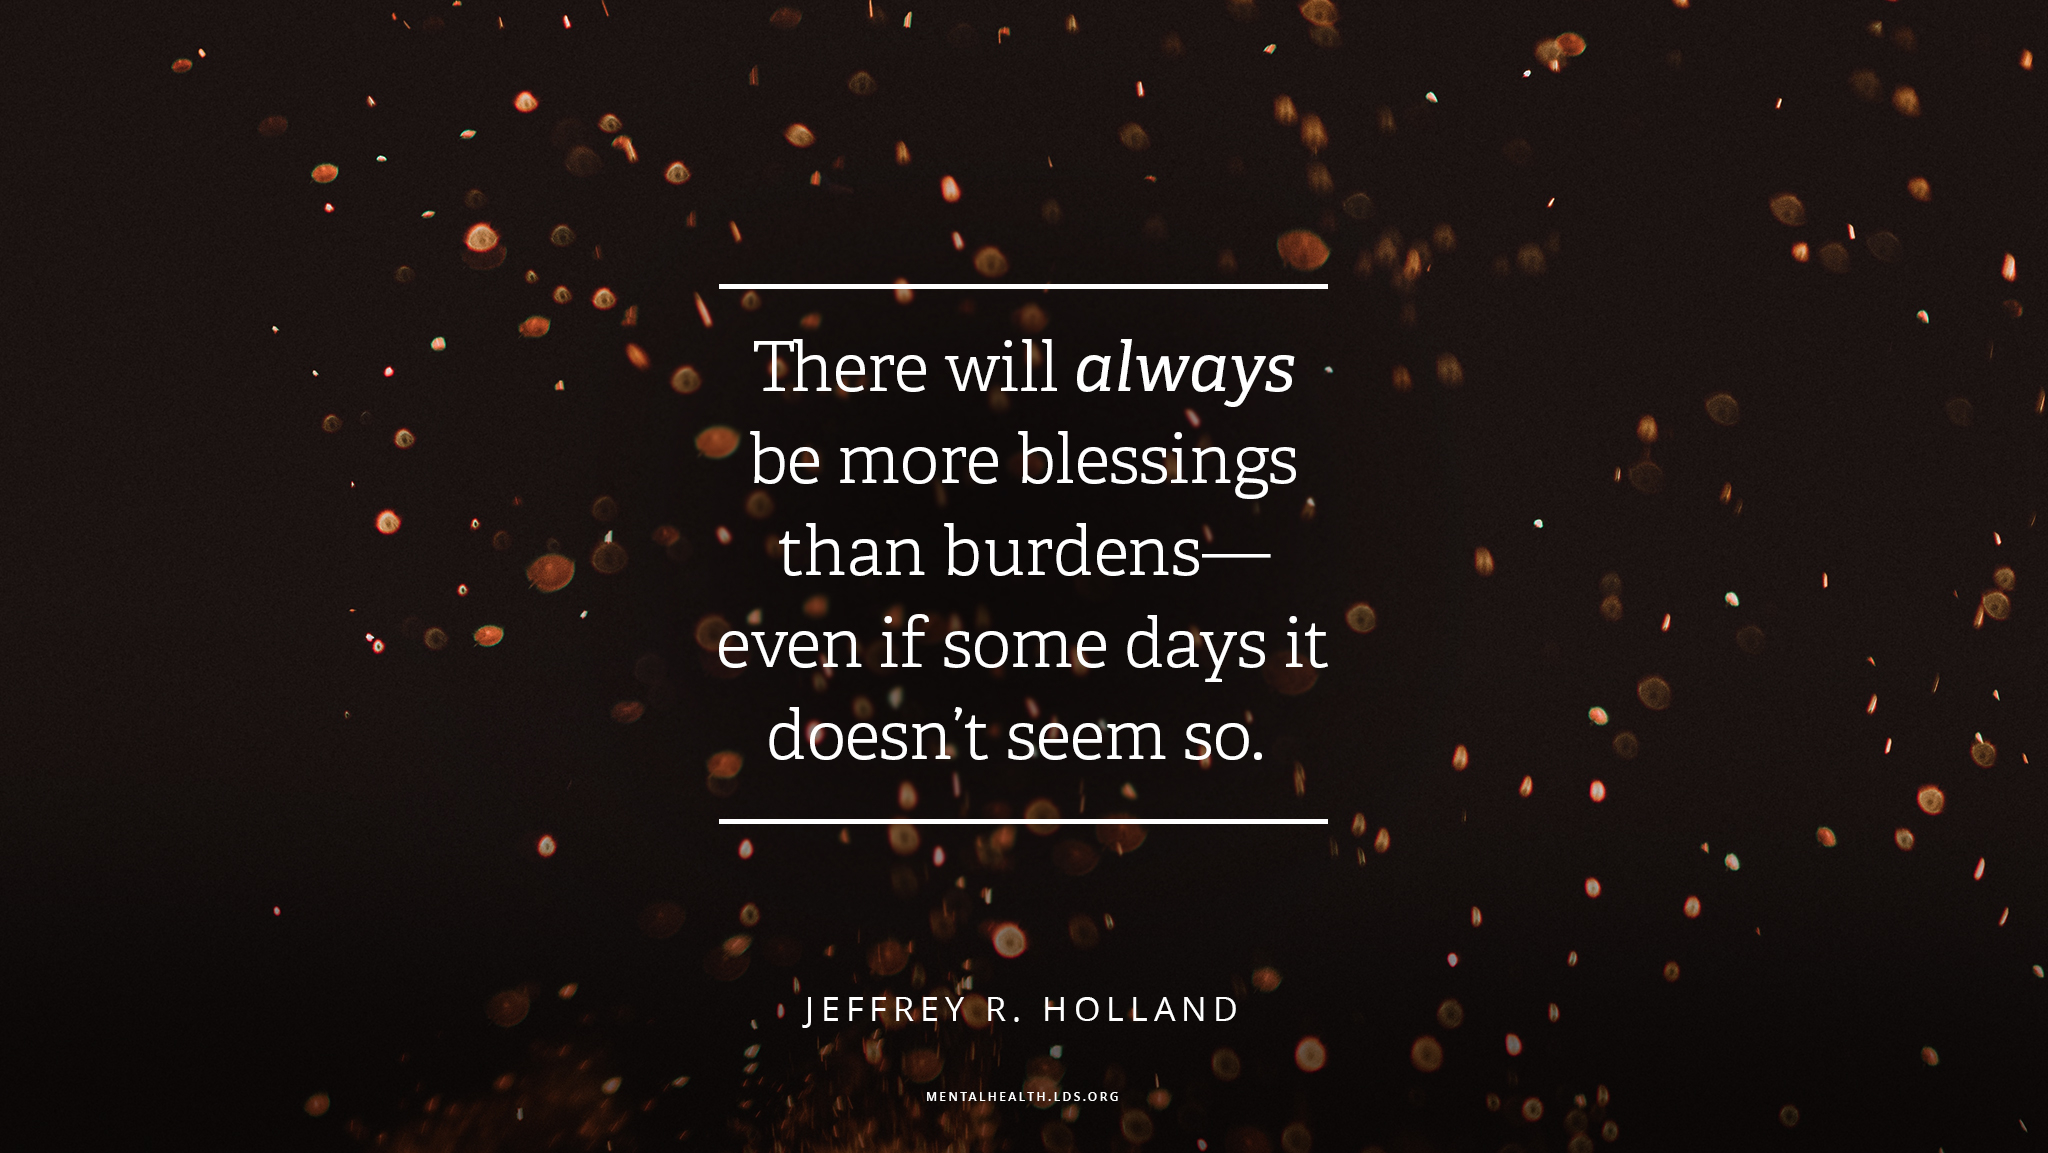 """There will always be more blessings than burdens—even if some days it doesn't seem so.""—Elder Jeffrey R. Holland, ""What I Wish Every New Member Knew"""